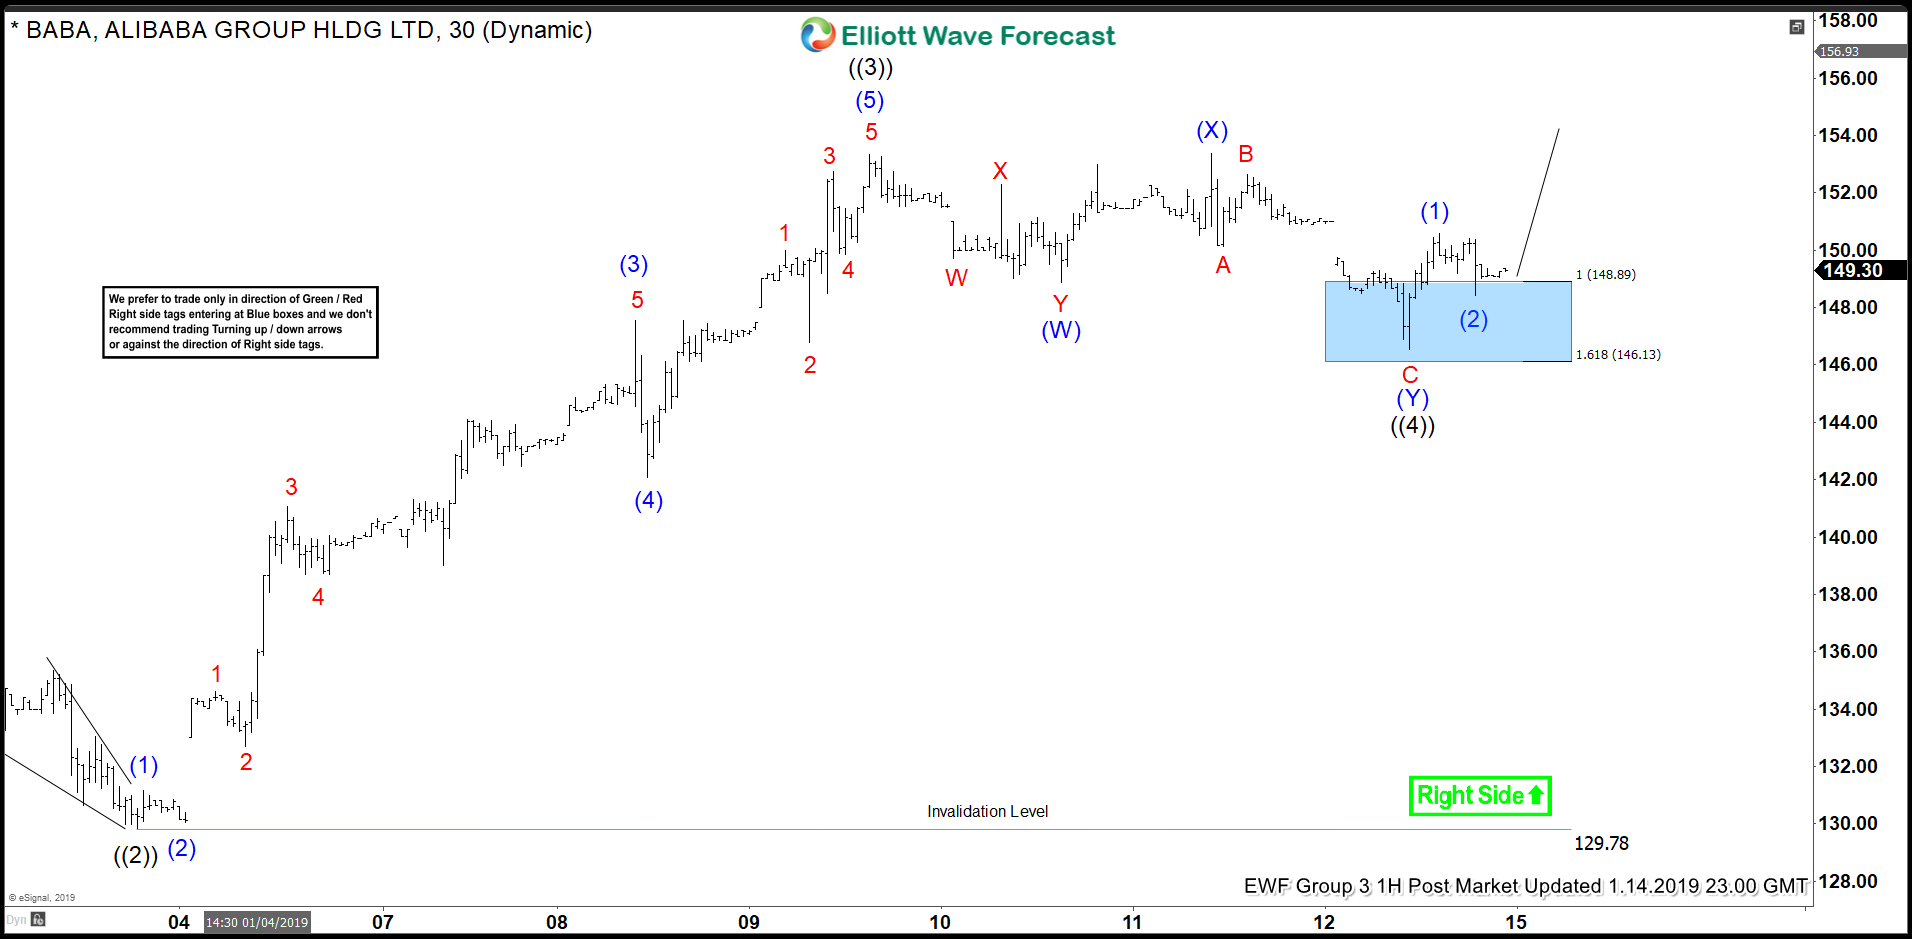 Alibaba (BABA) short term Elliott Wave structure showing an impulse